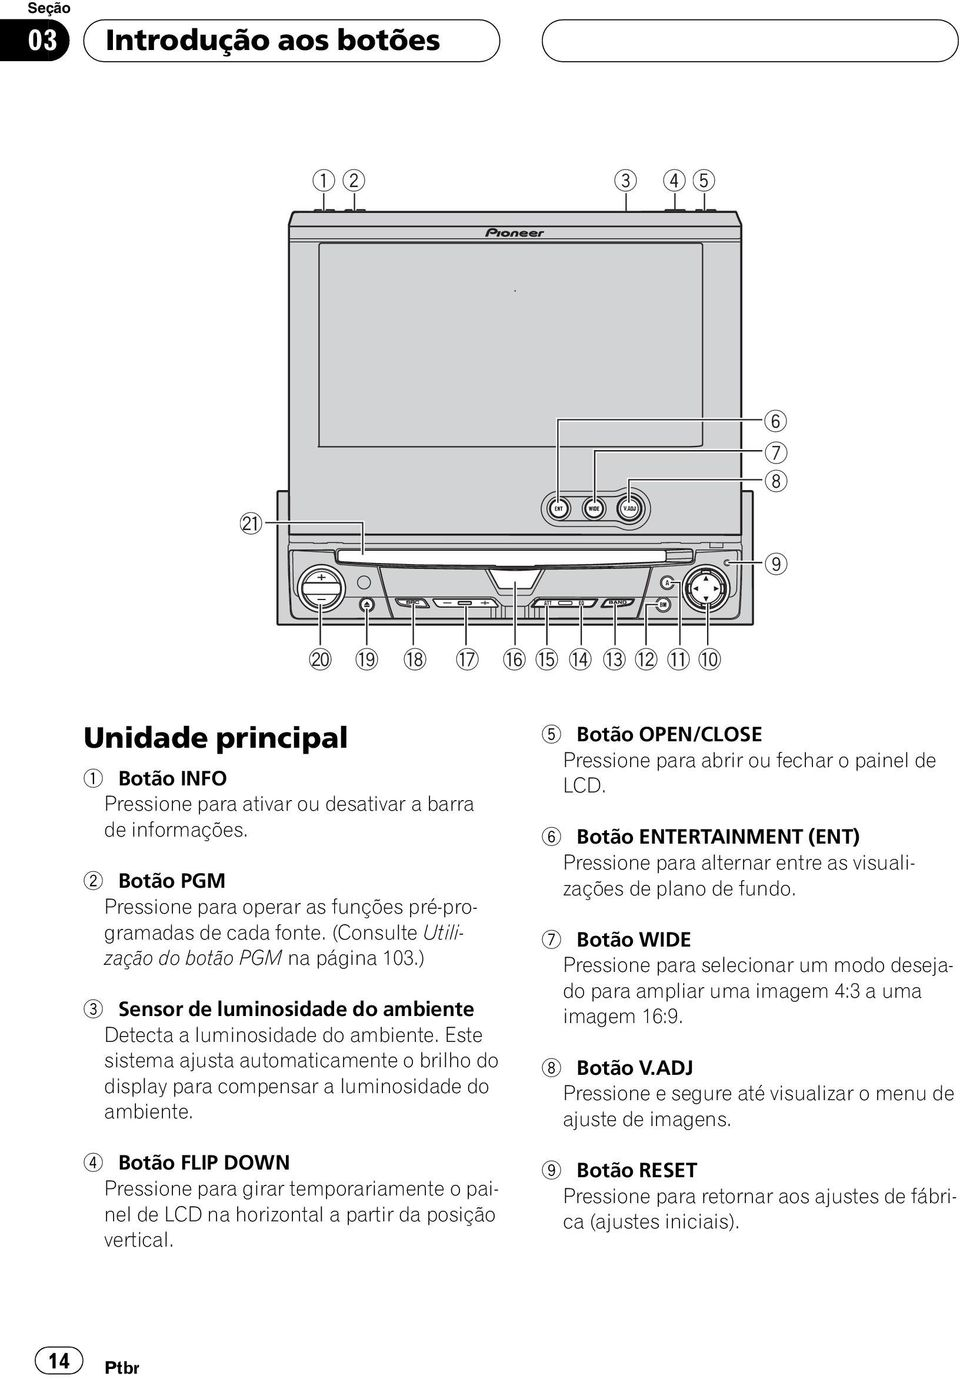 Este sistema ajusta automaticamente o brilho do display para compensar a luminosidade do ambiente.